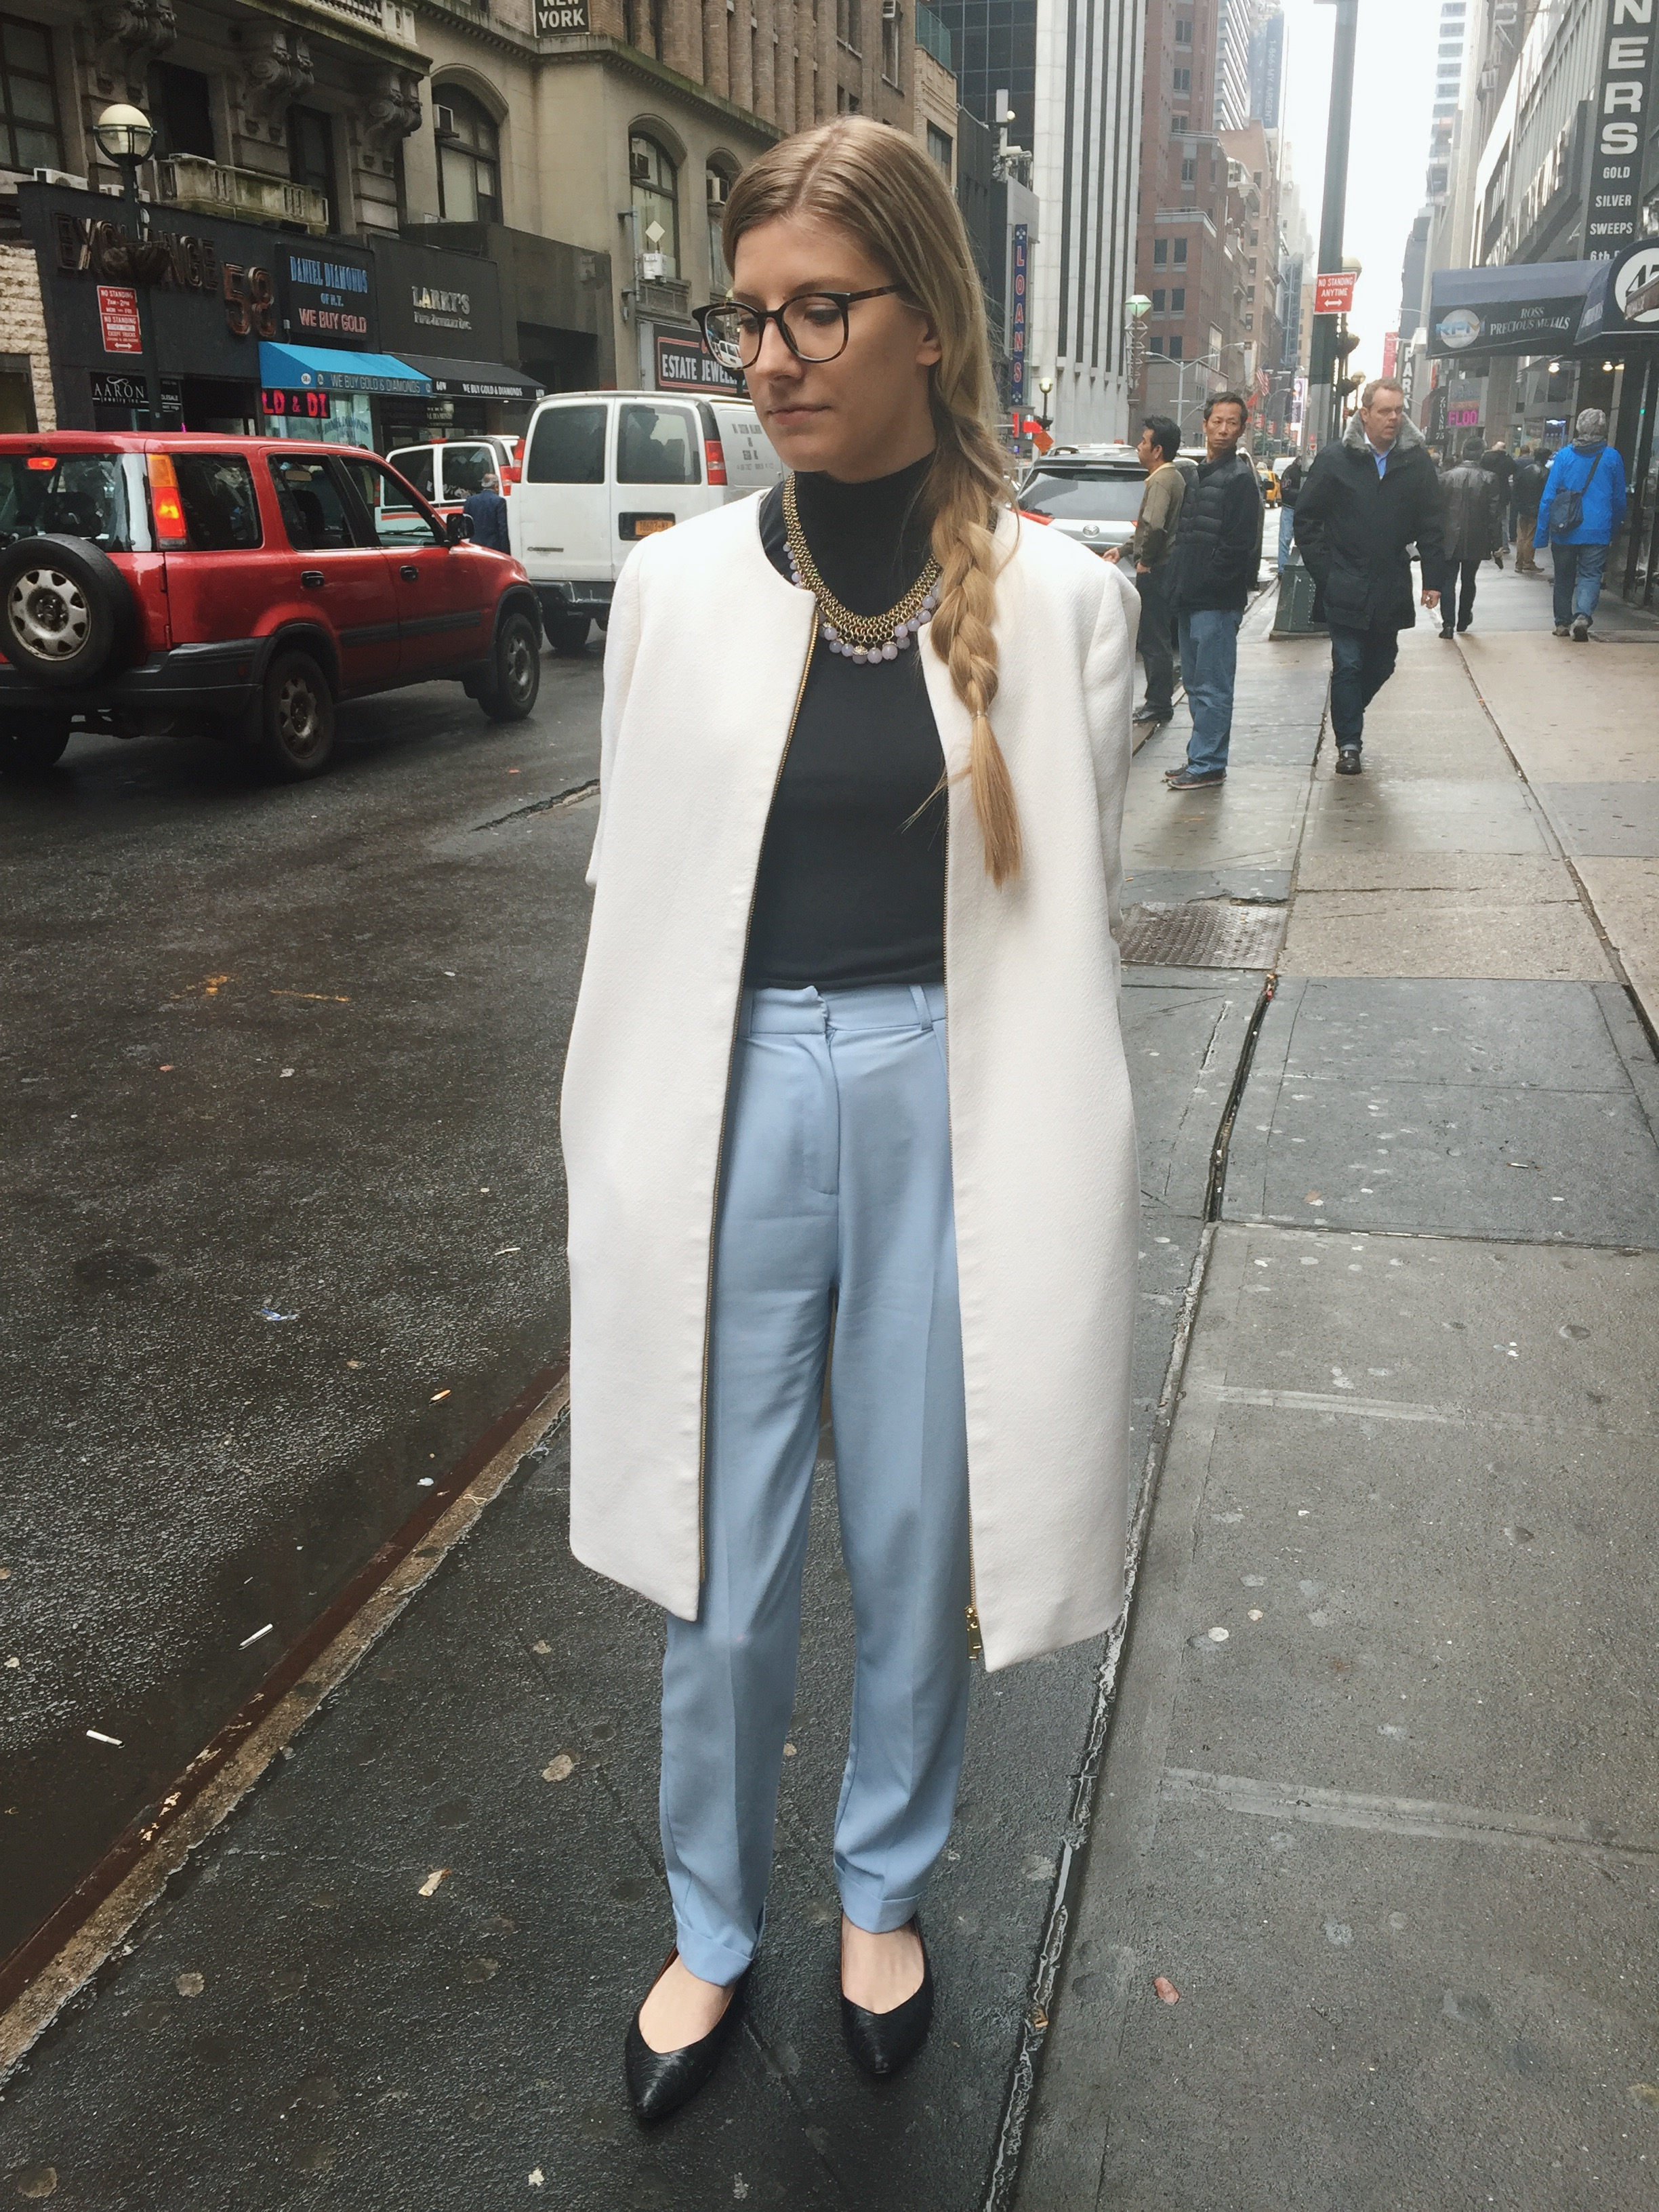 Diamond District, Manhattan (this photo was taken right after I purchased this coat secondhand from a friend)  February 2017